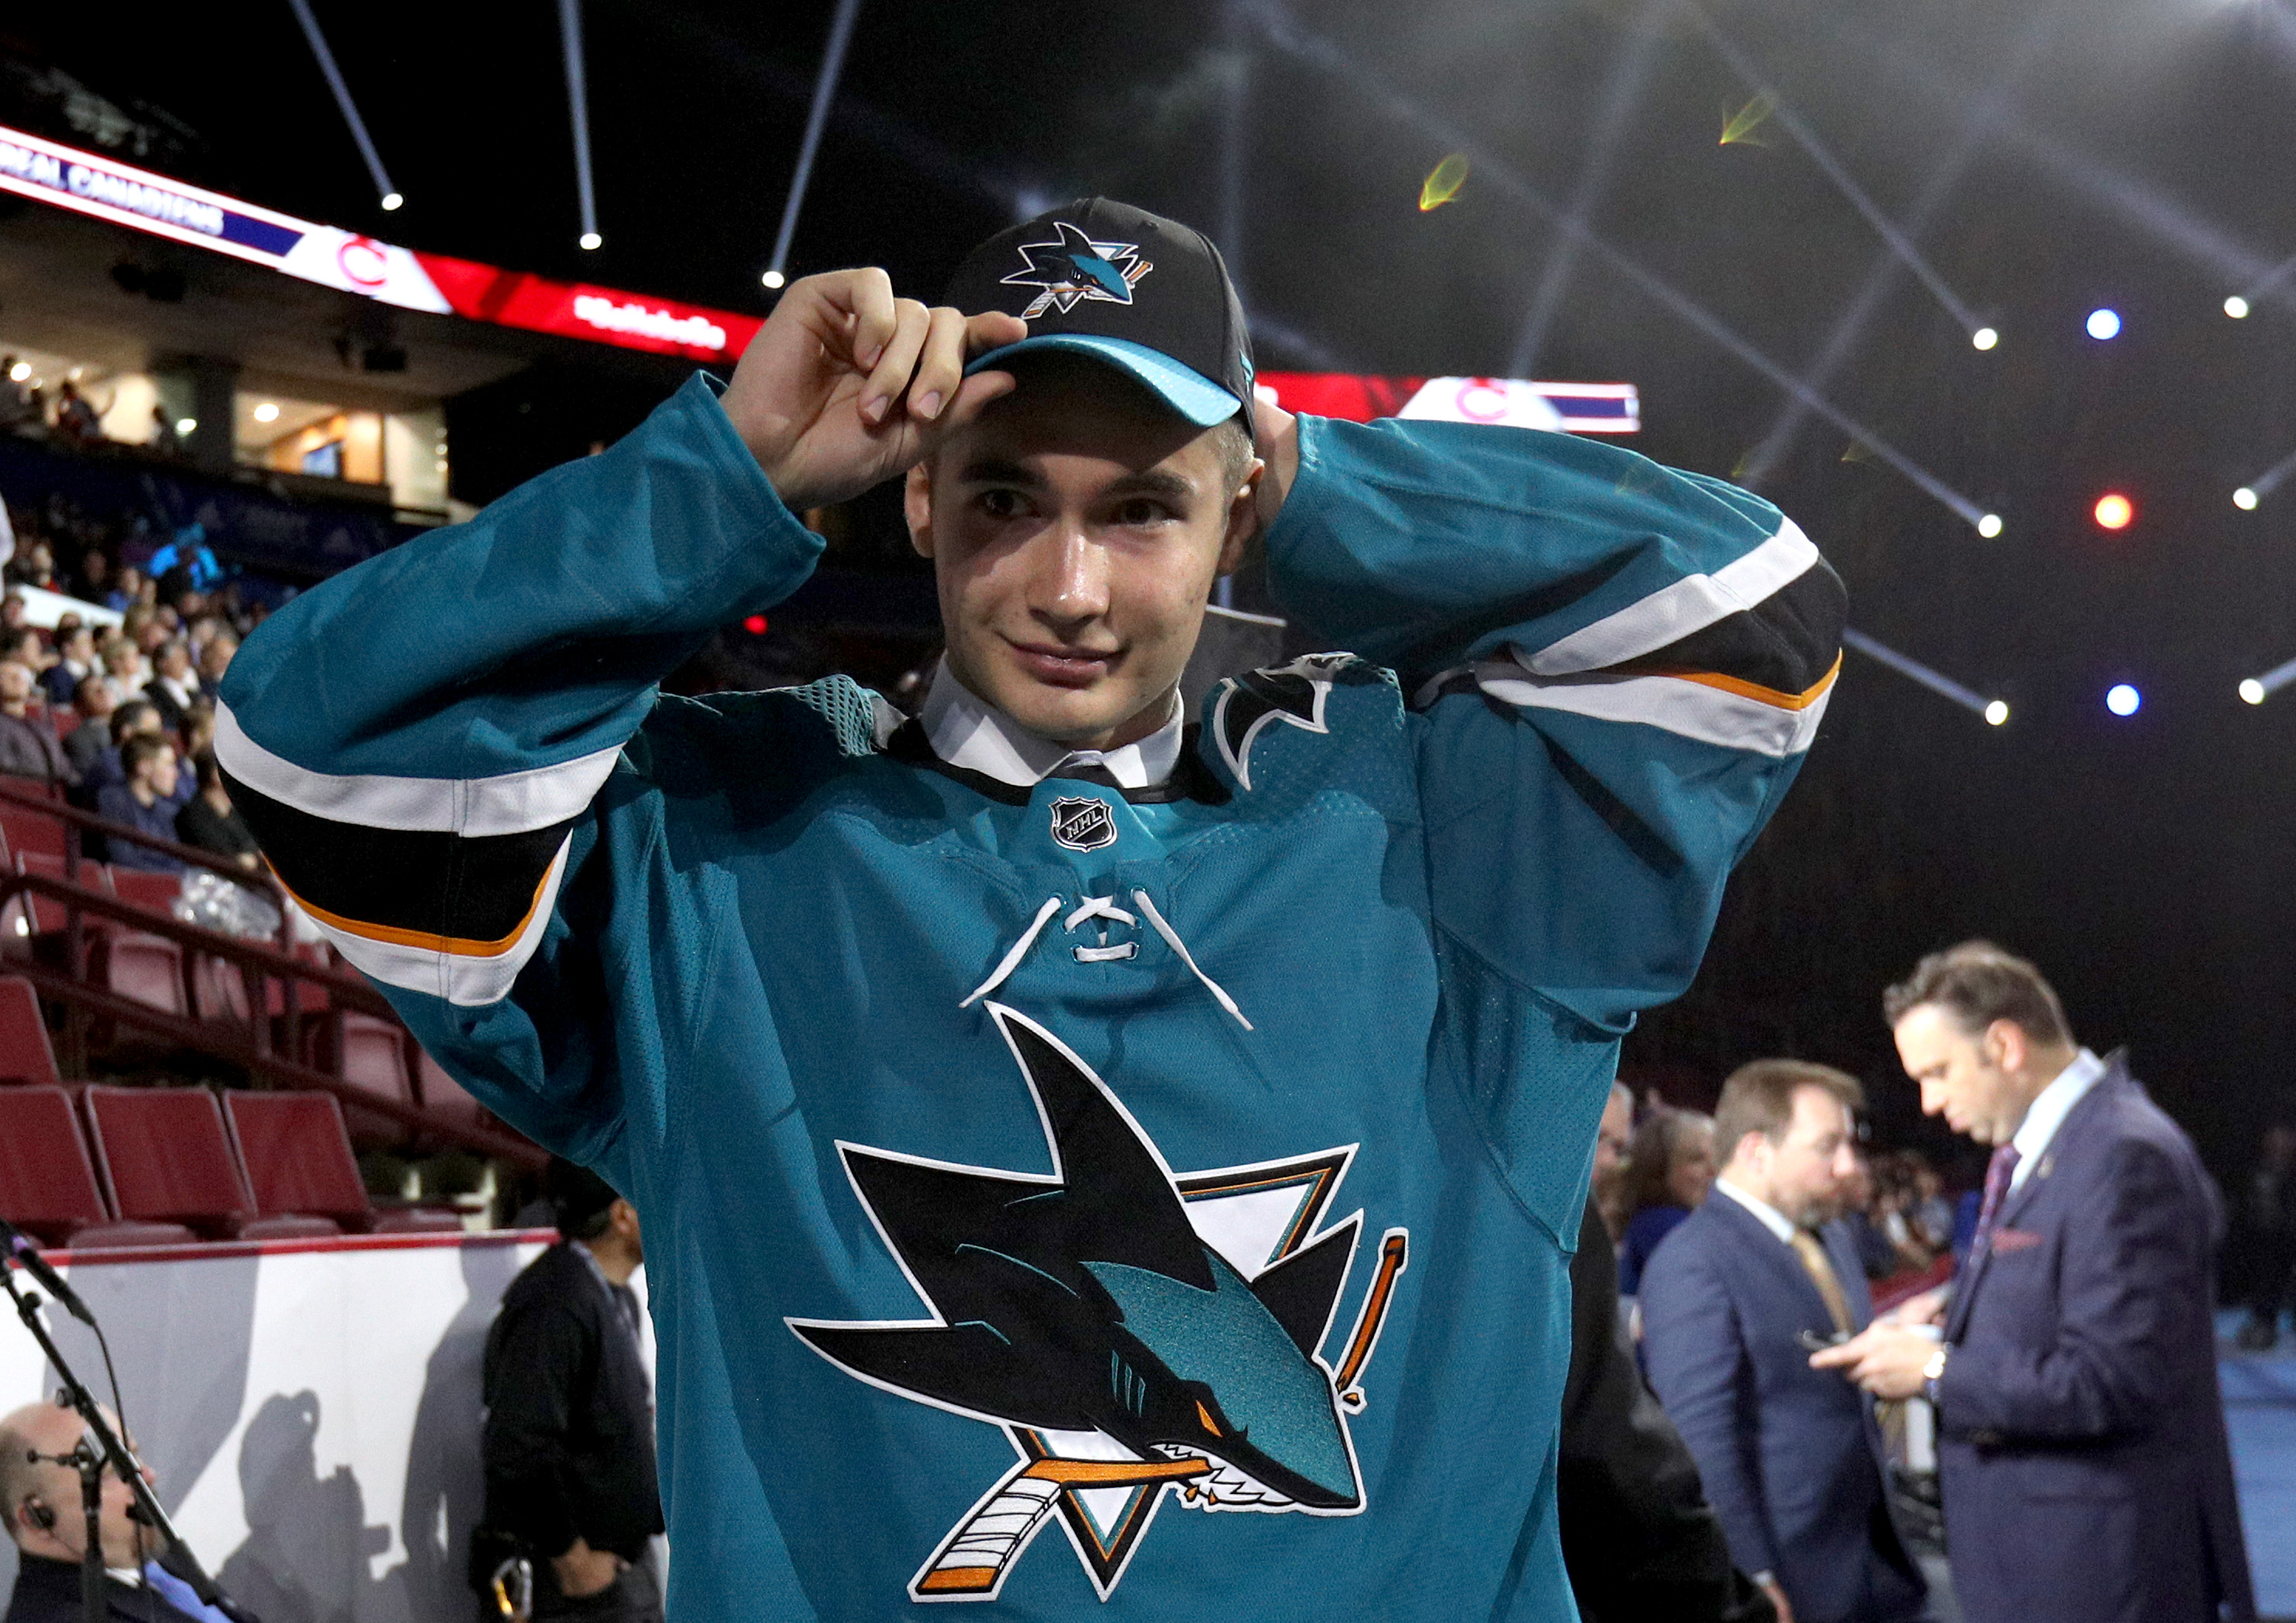 Artemi Kniazev, 48th overall pick of the San Jose Sharks, puts on a team hat during Rounds 2-7 of the 2019 NHL Draft at Rogers Arena on June 22, 2019 in Vancouver, Canada.